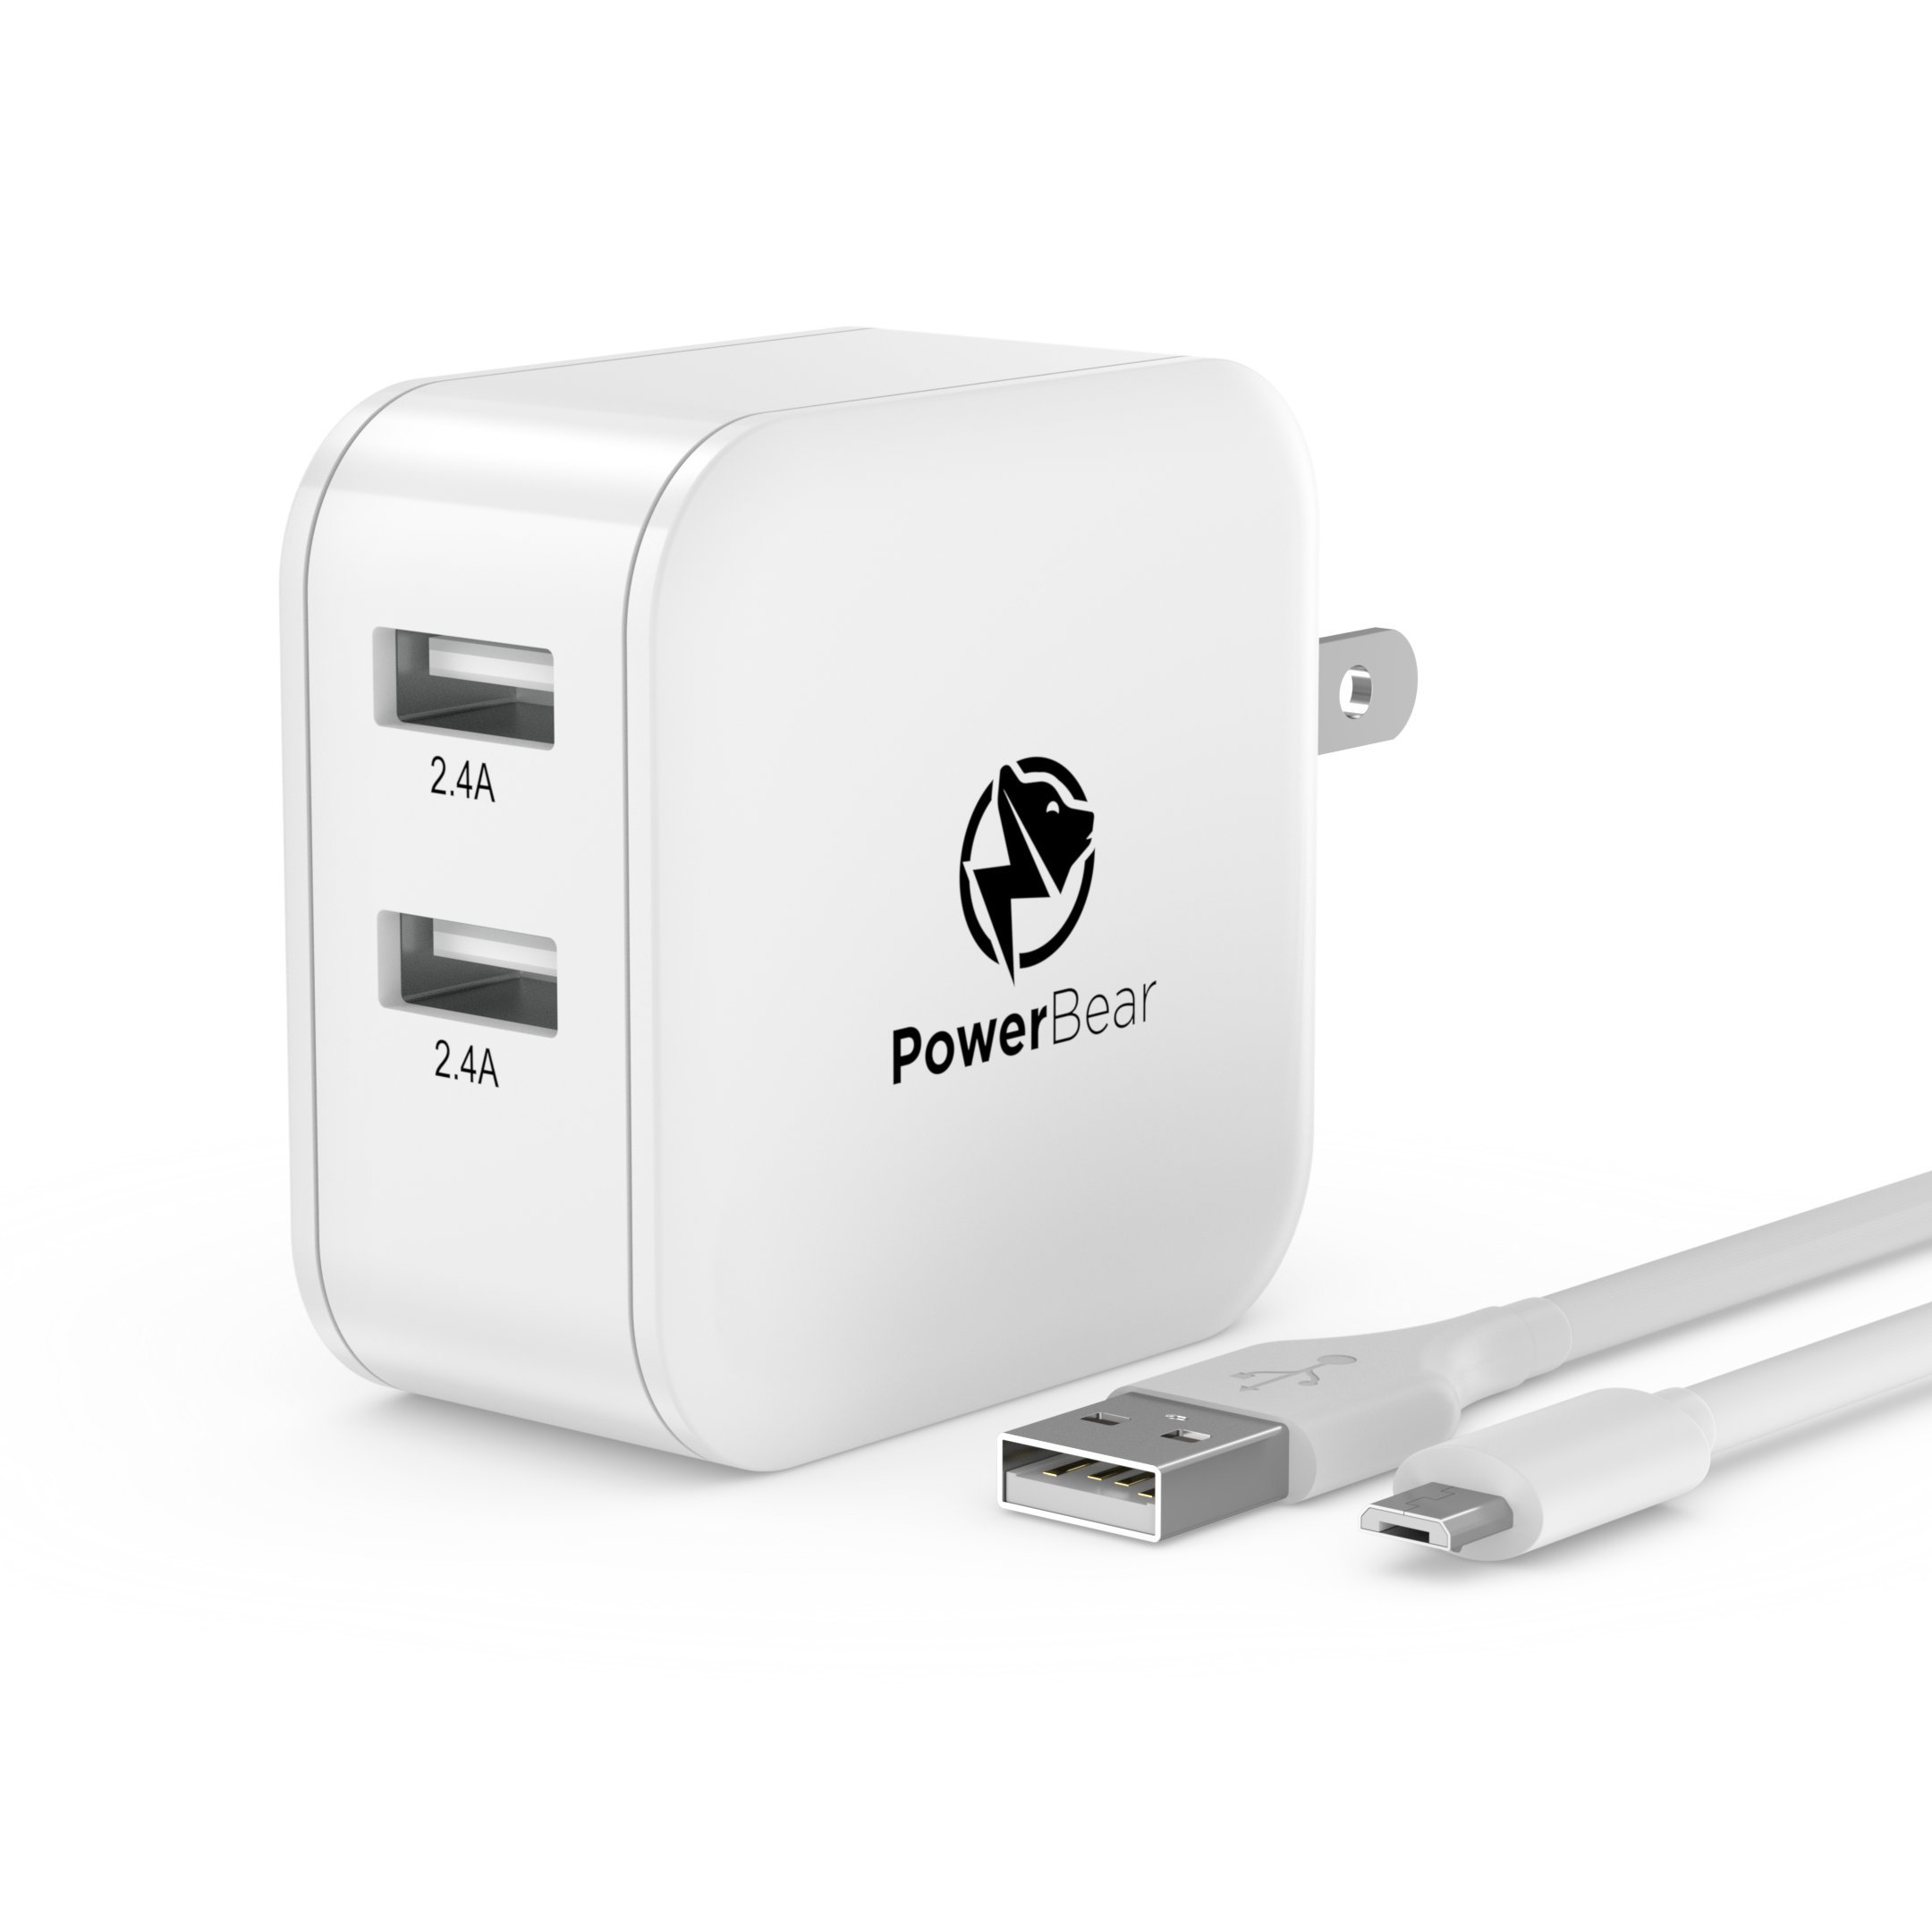 PowerBear USB Charger Dual USB Wall Charger [4.8A 24W] Foldable Plug, Travel Ready, with SmartID Technology for iPhone, Samsung Galaxy S7/S6 & More - White [24 Month Warranty]